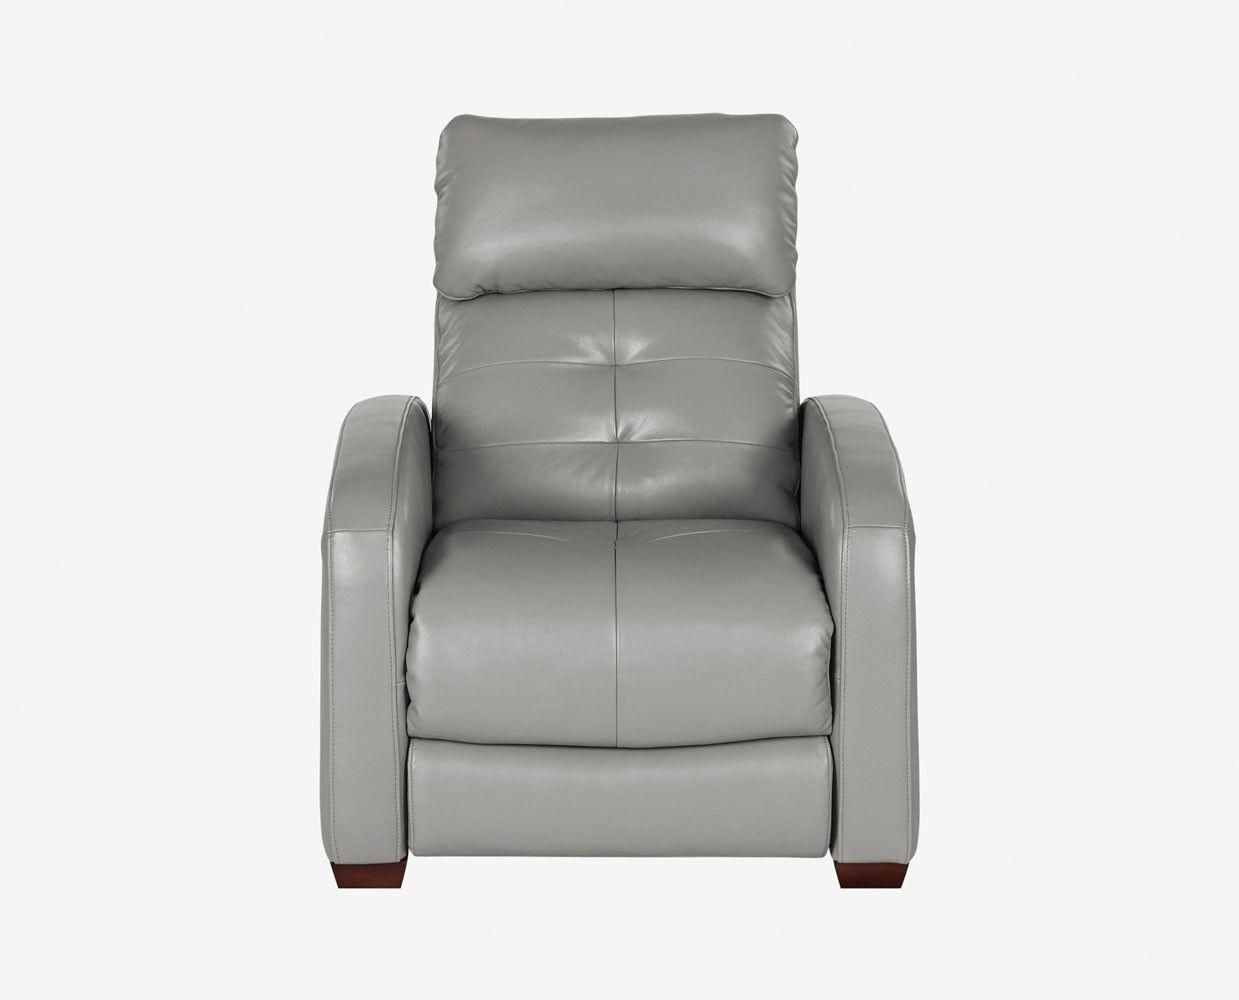 Chairs At Ashley Furniture Comfortablelivingrooms Gamingchair In